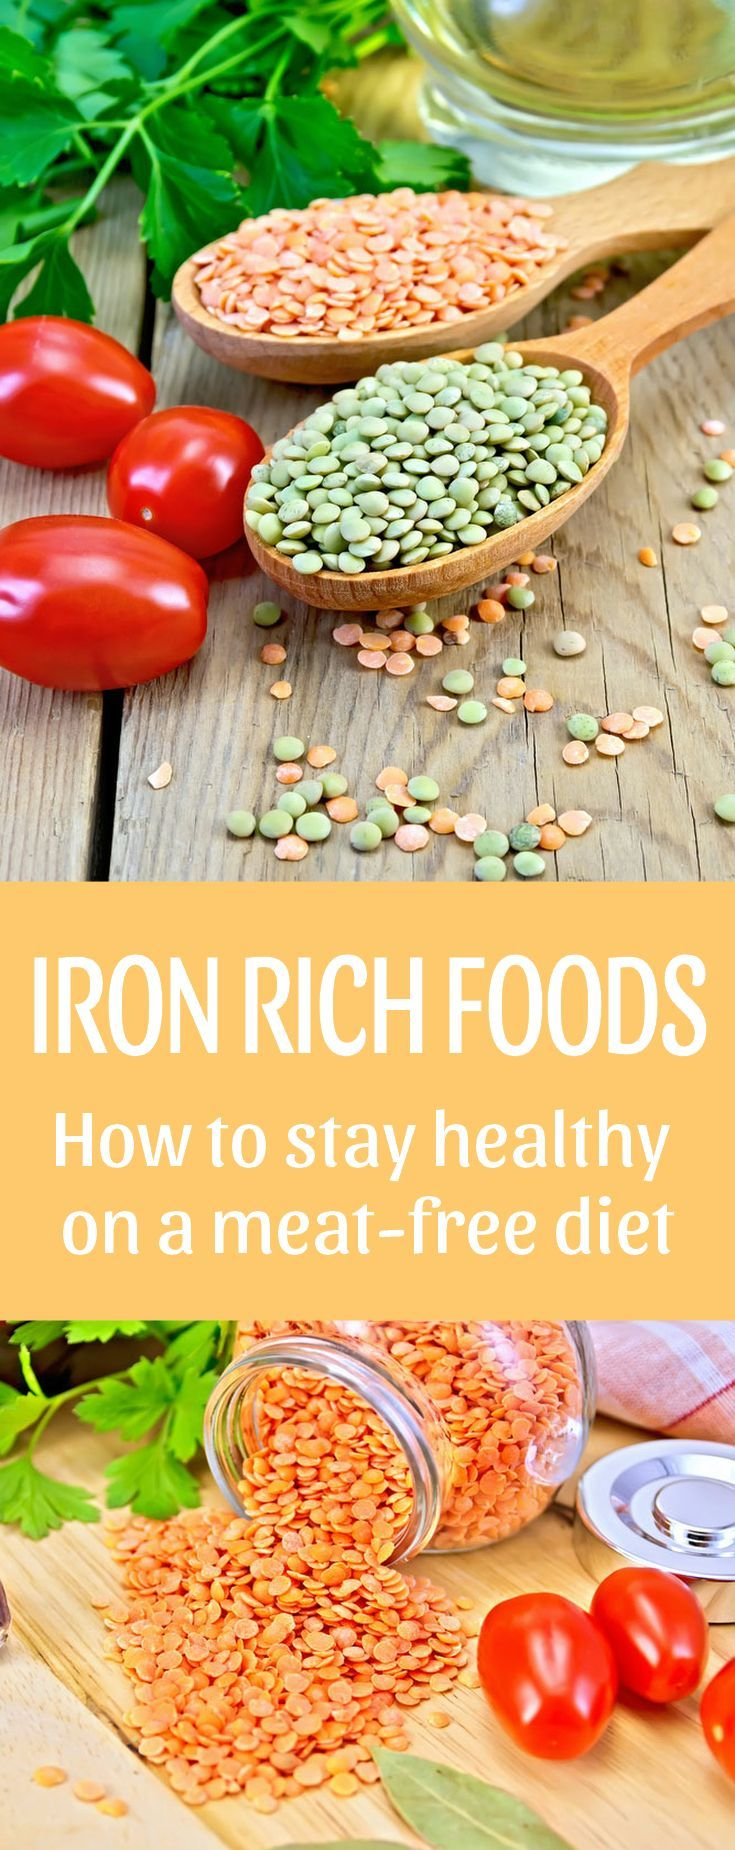 Iron rich foods Vitamins for vegetarians, Iron rich